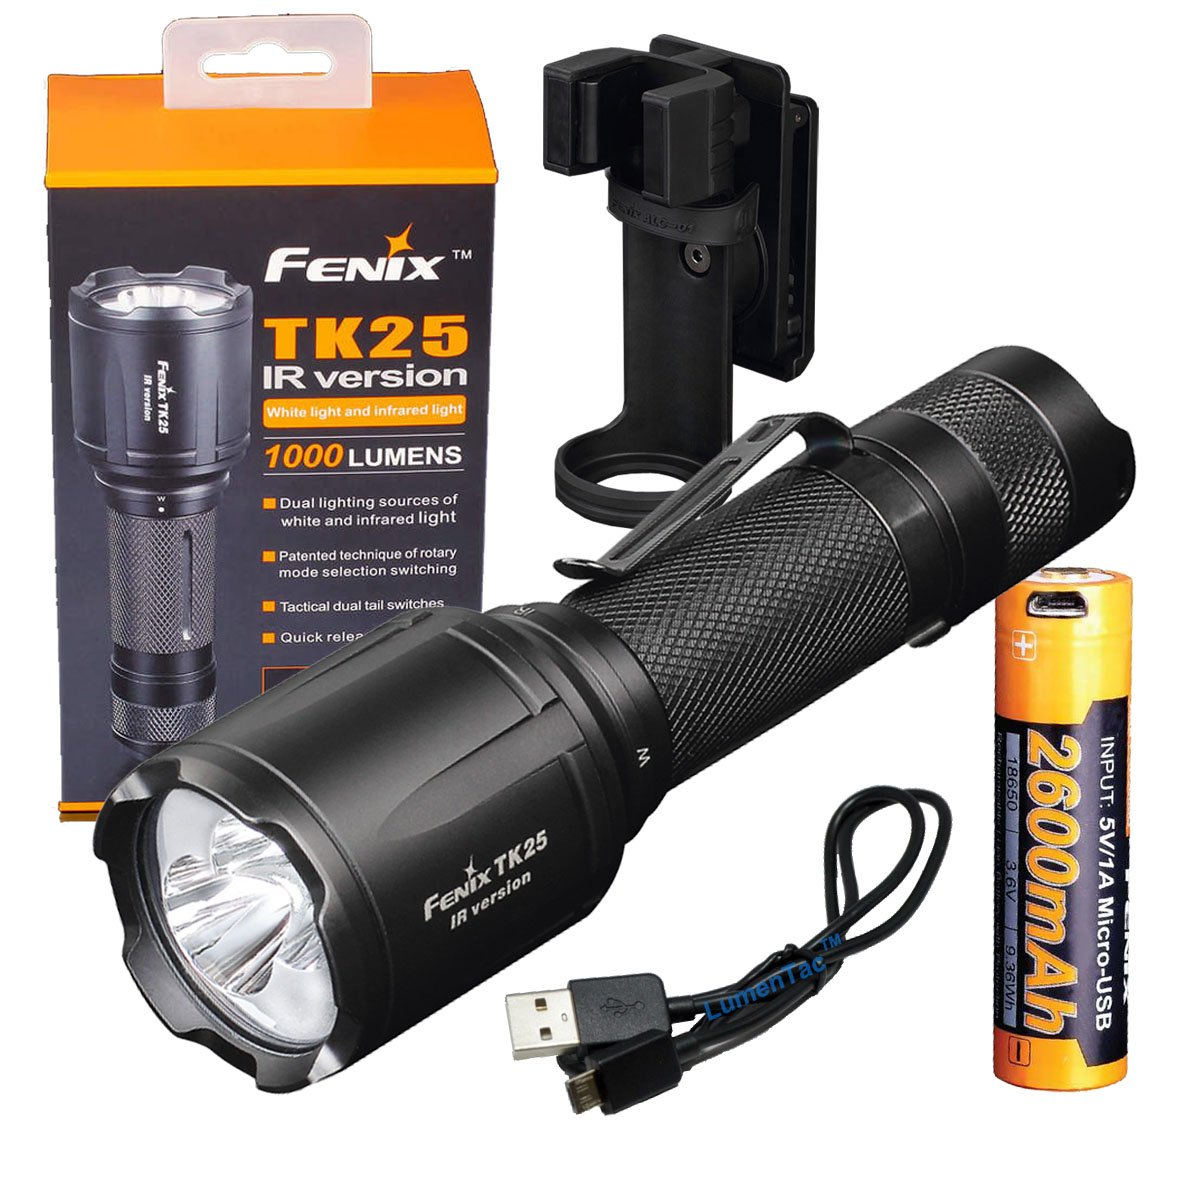 Fenix Tk25 IR (TK25IR) 1000 Lumen LED 3000mW 850nm Infrared Tactical Flashlight w/ Fenix USB Rechargeable Battery & LumenTac Charging Cable by Fenix